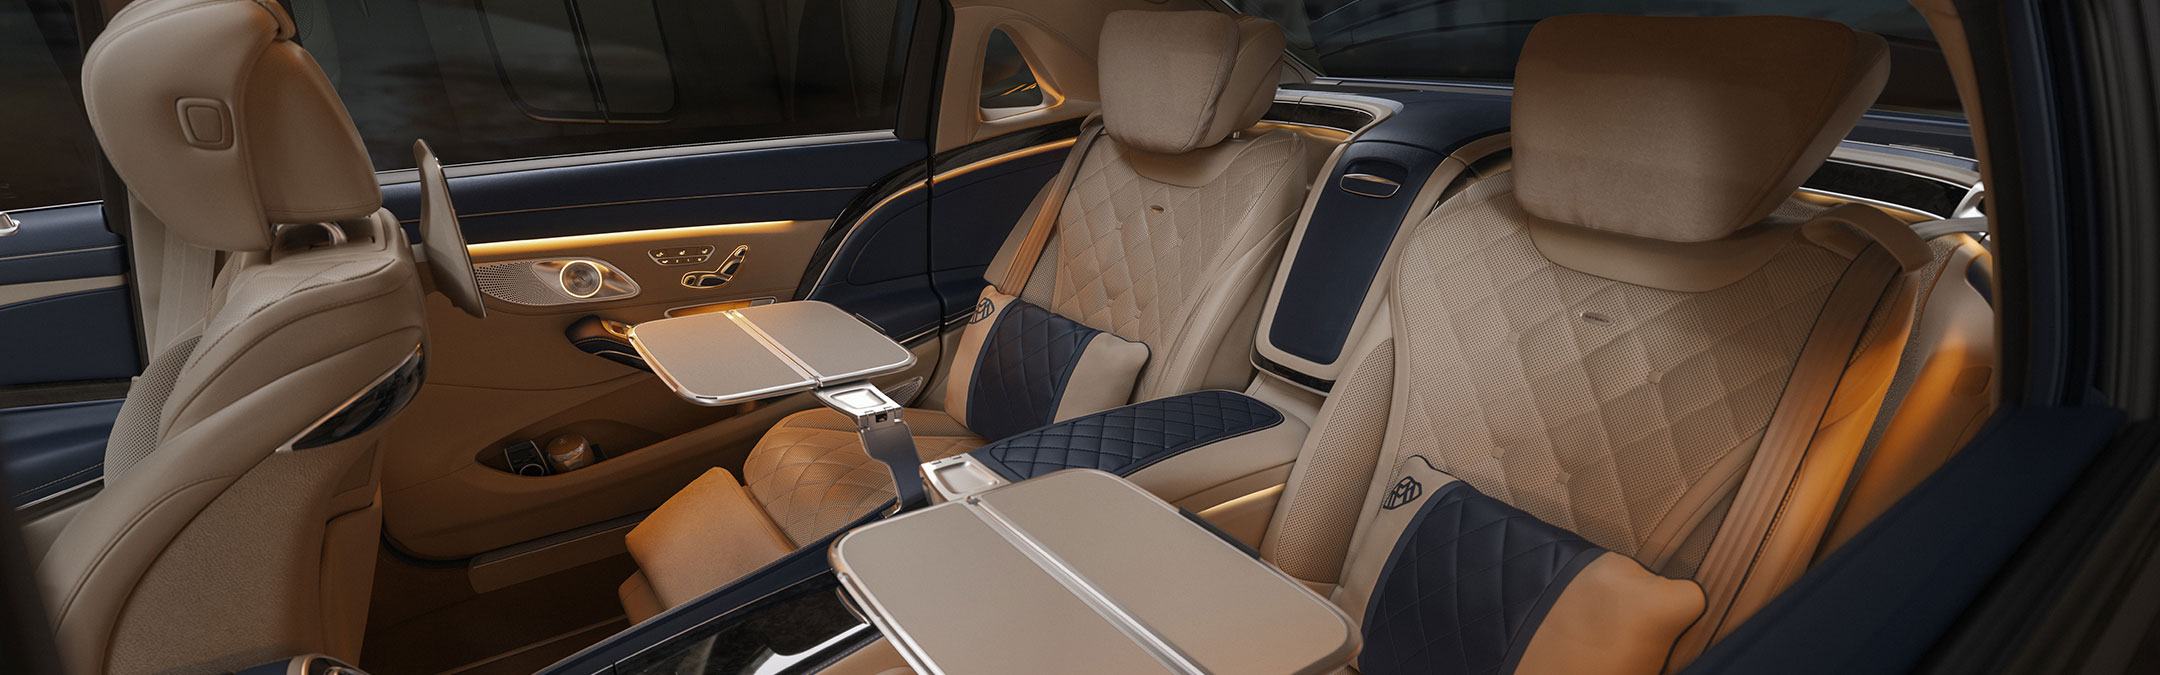 Mercedes Maybach rear seats